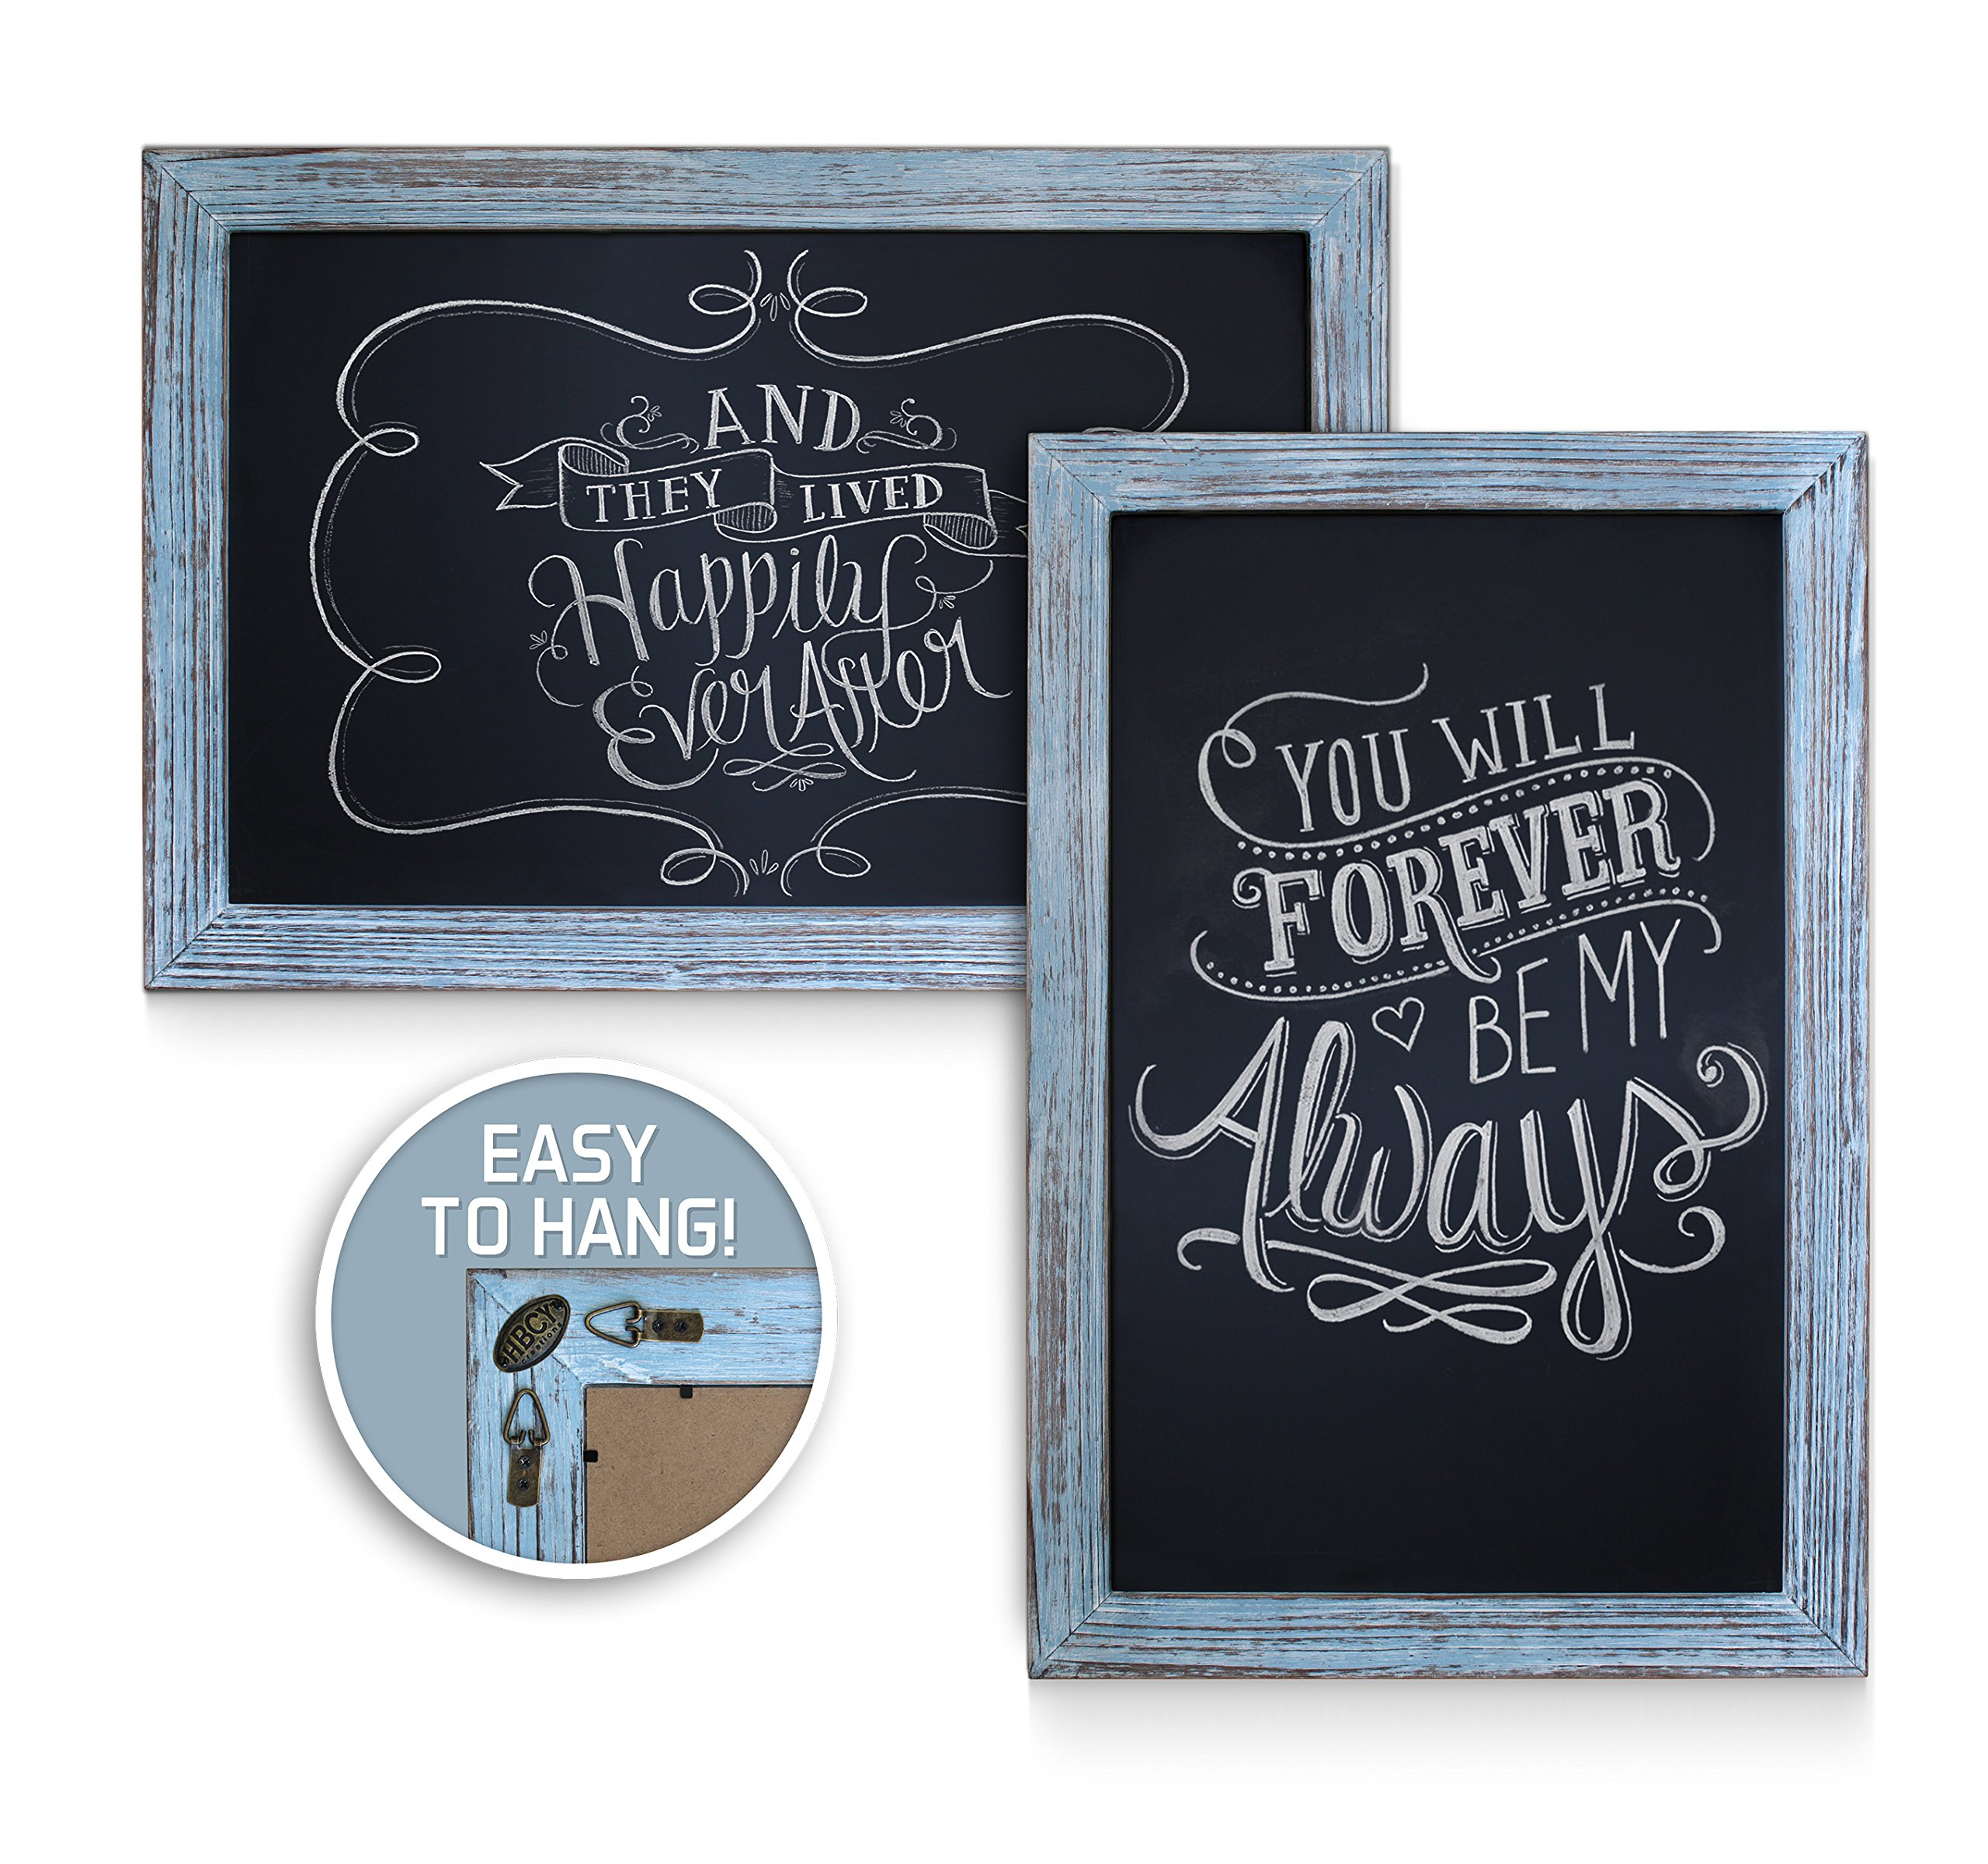 Rustic Blue Magnetic Wall Chalkboard, Extra Large Size 20'' x 30'', Framed Decorative Chalkboard - Great for Kitchen Decor, Weddings, Restaurant Menus and More! … (20''x30'') by HBCY Creations (Image #4)